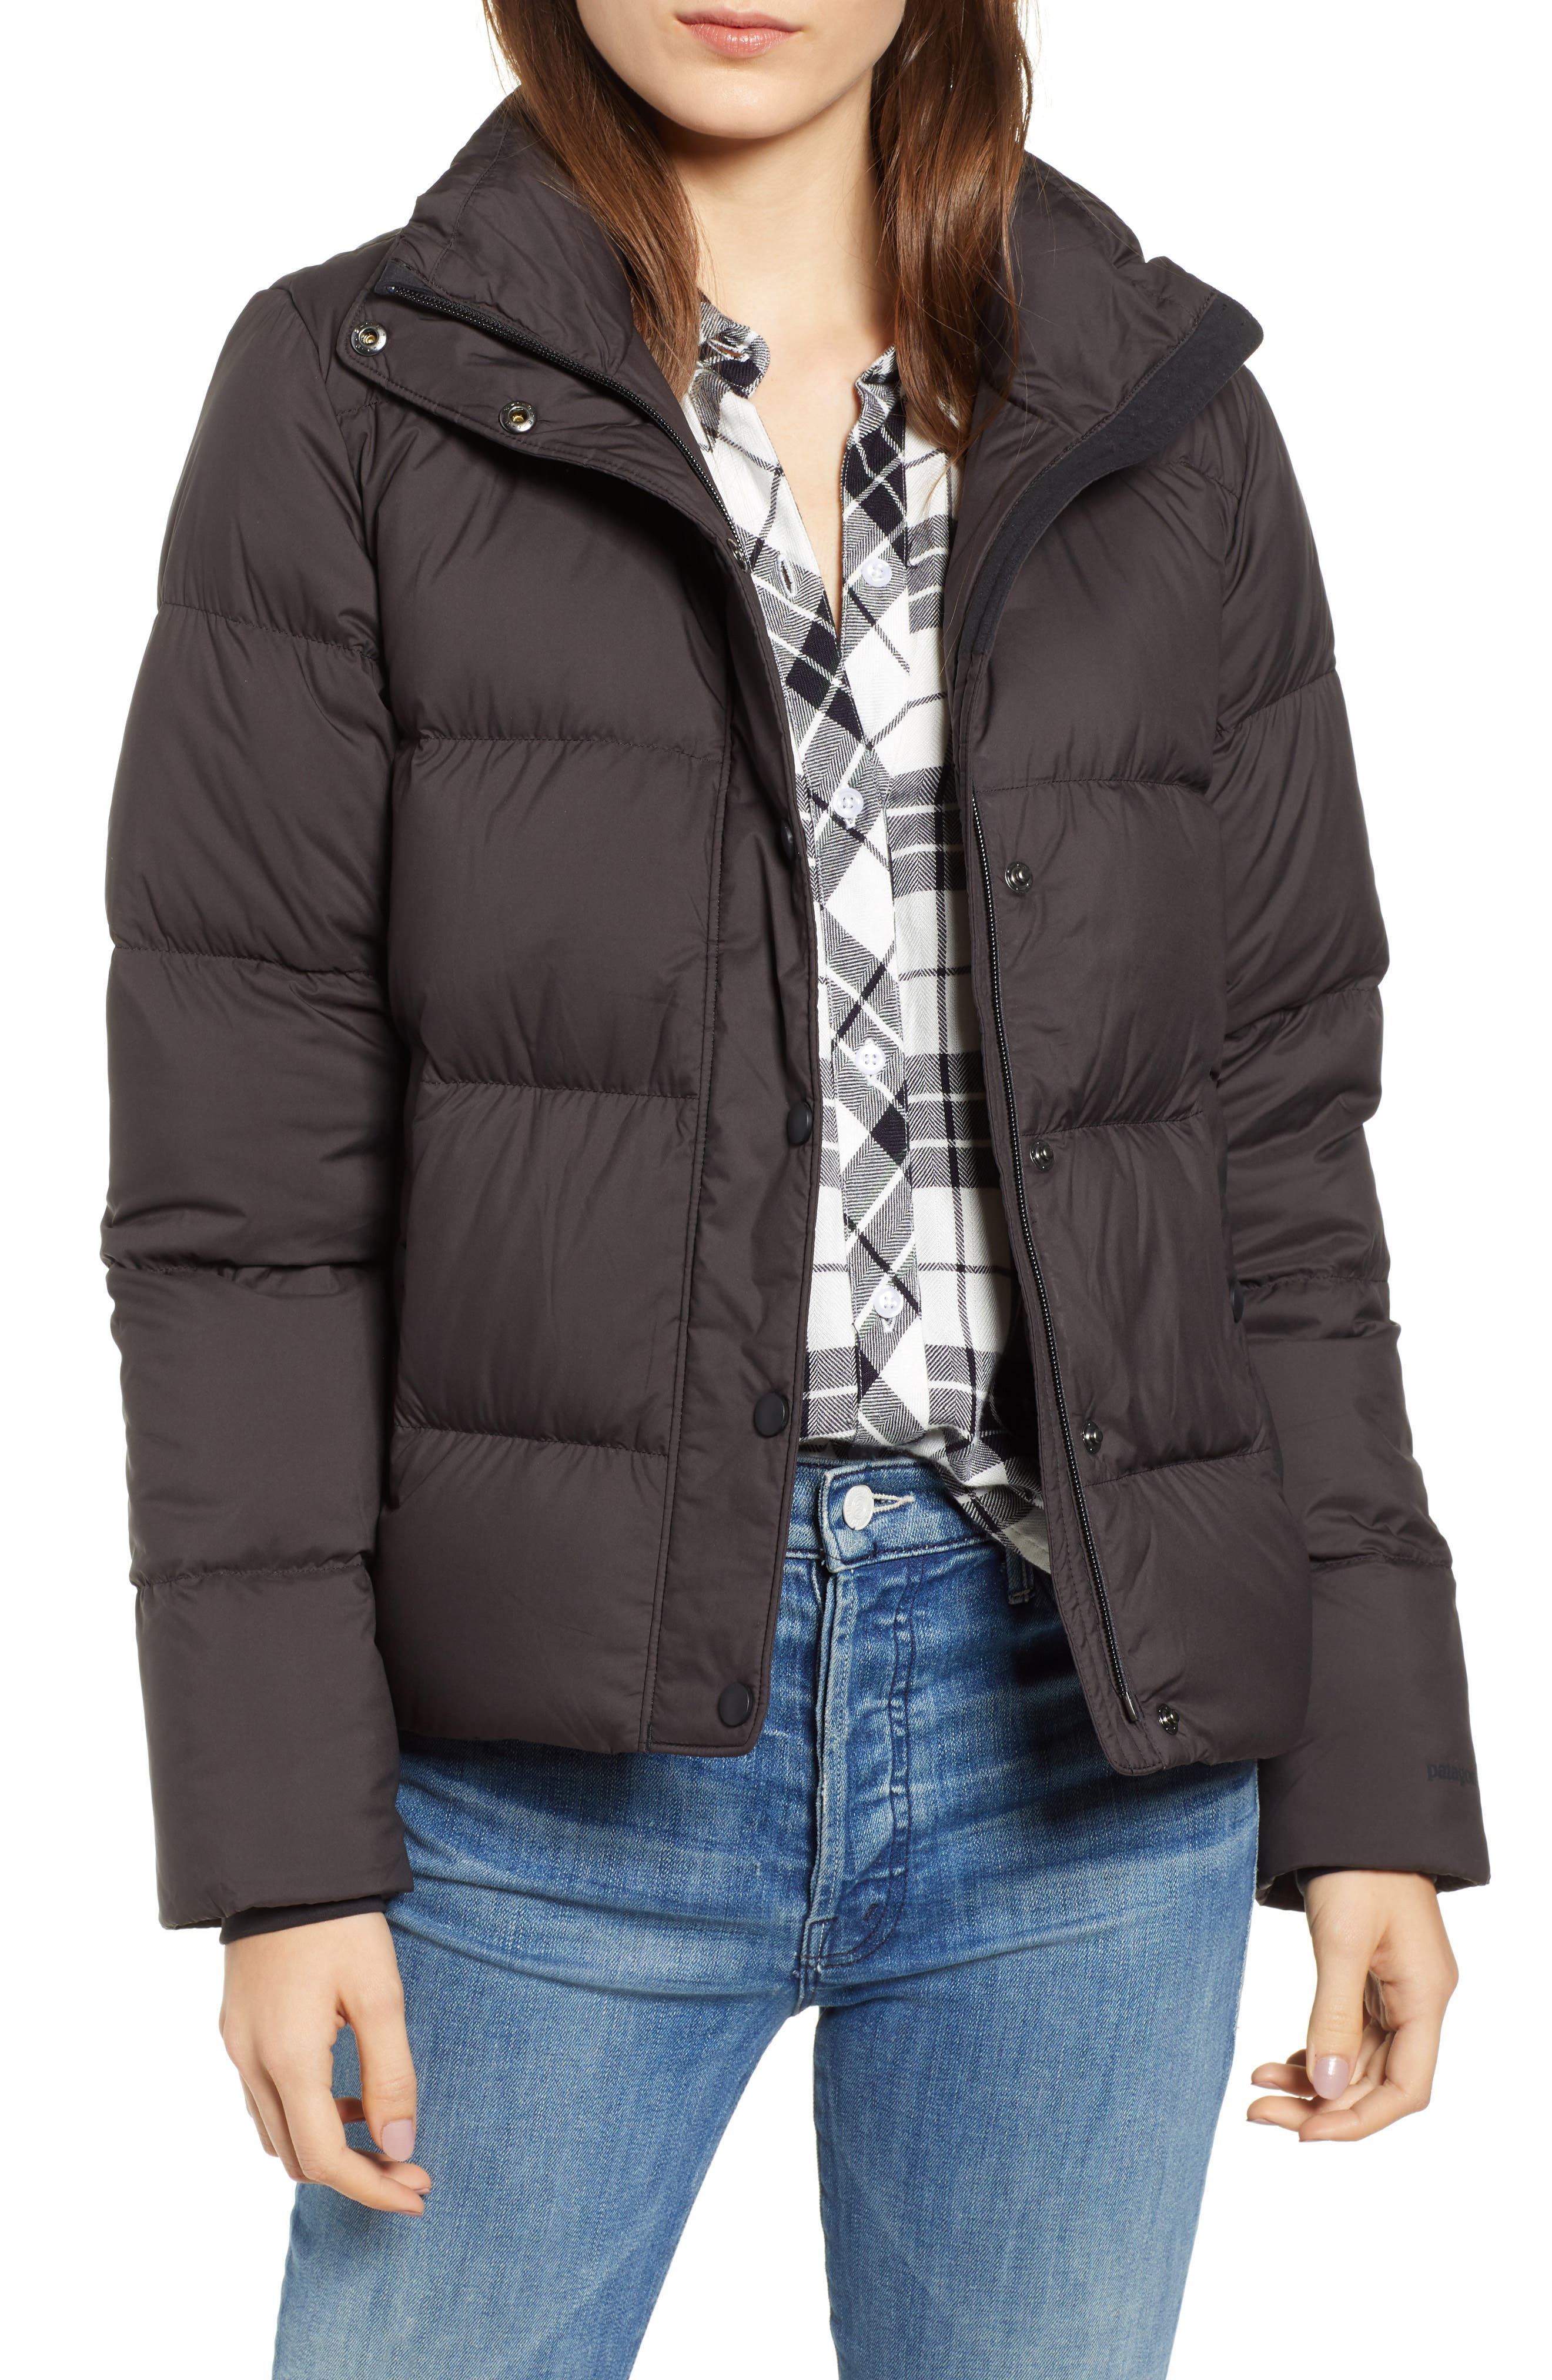 Patagonia Silent Water Repellent 700-Fill Power Down Insulated Jacket, Black